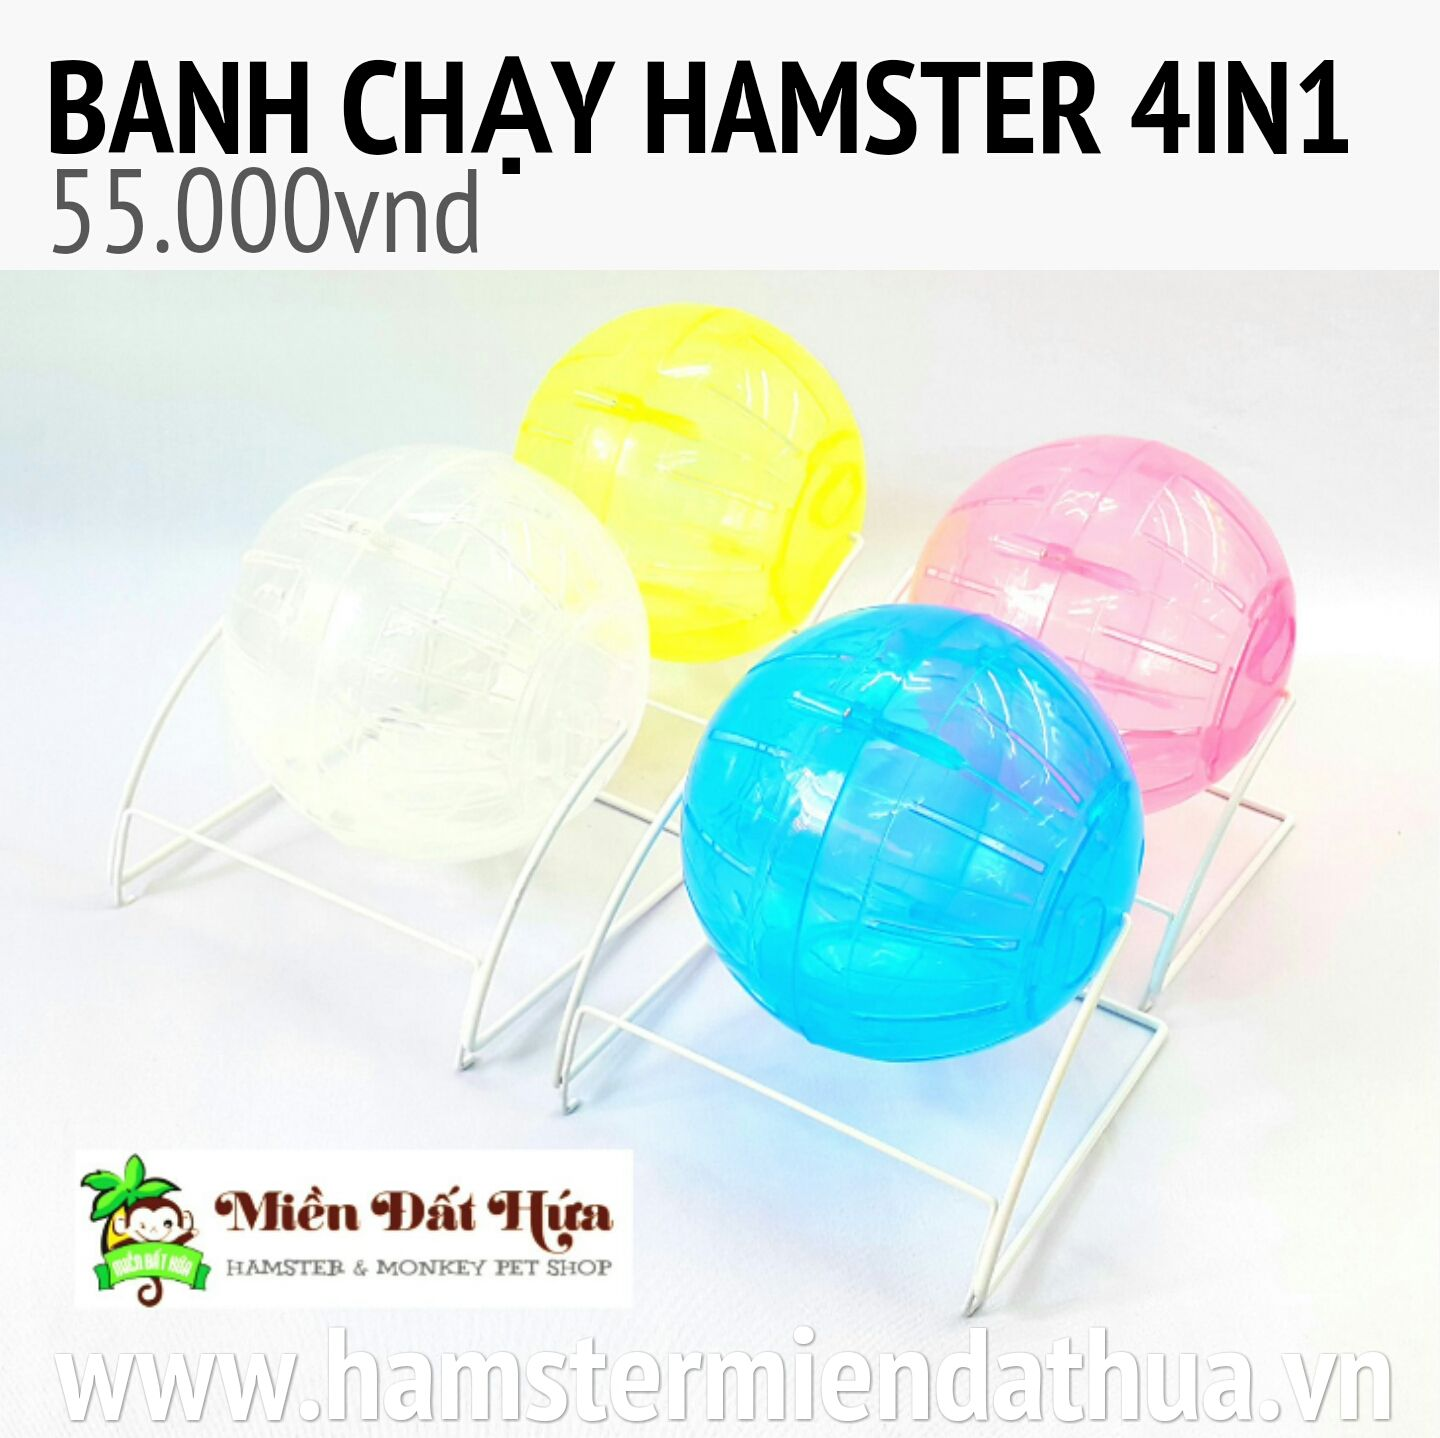 banh chạy hamster 4in1 new